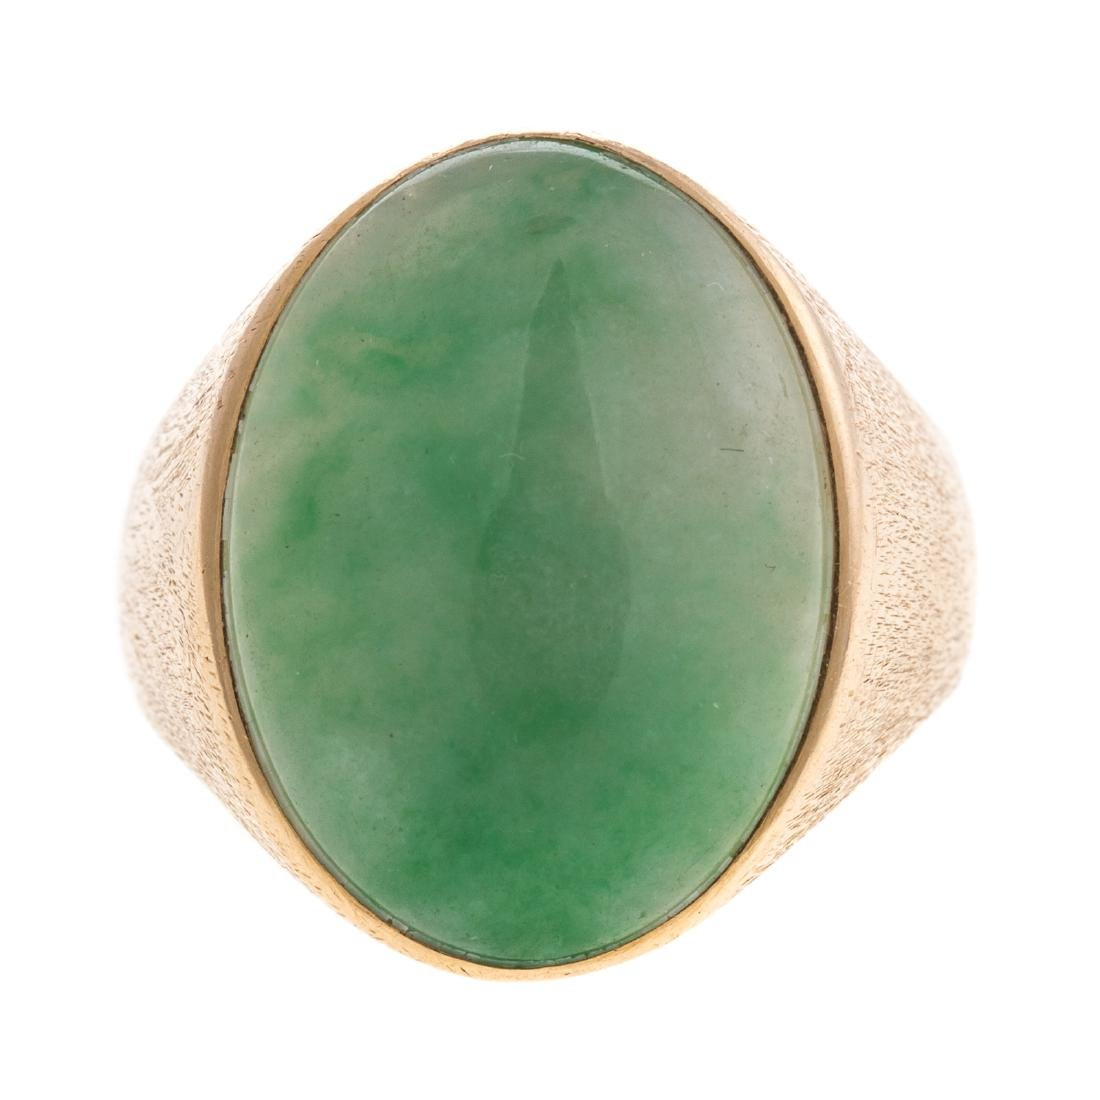 A Lady's Jadeite Ring in 14K Gold